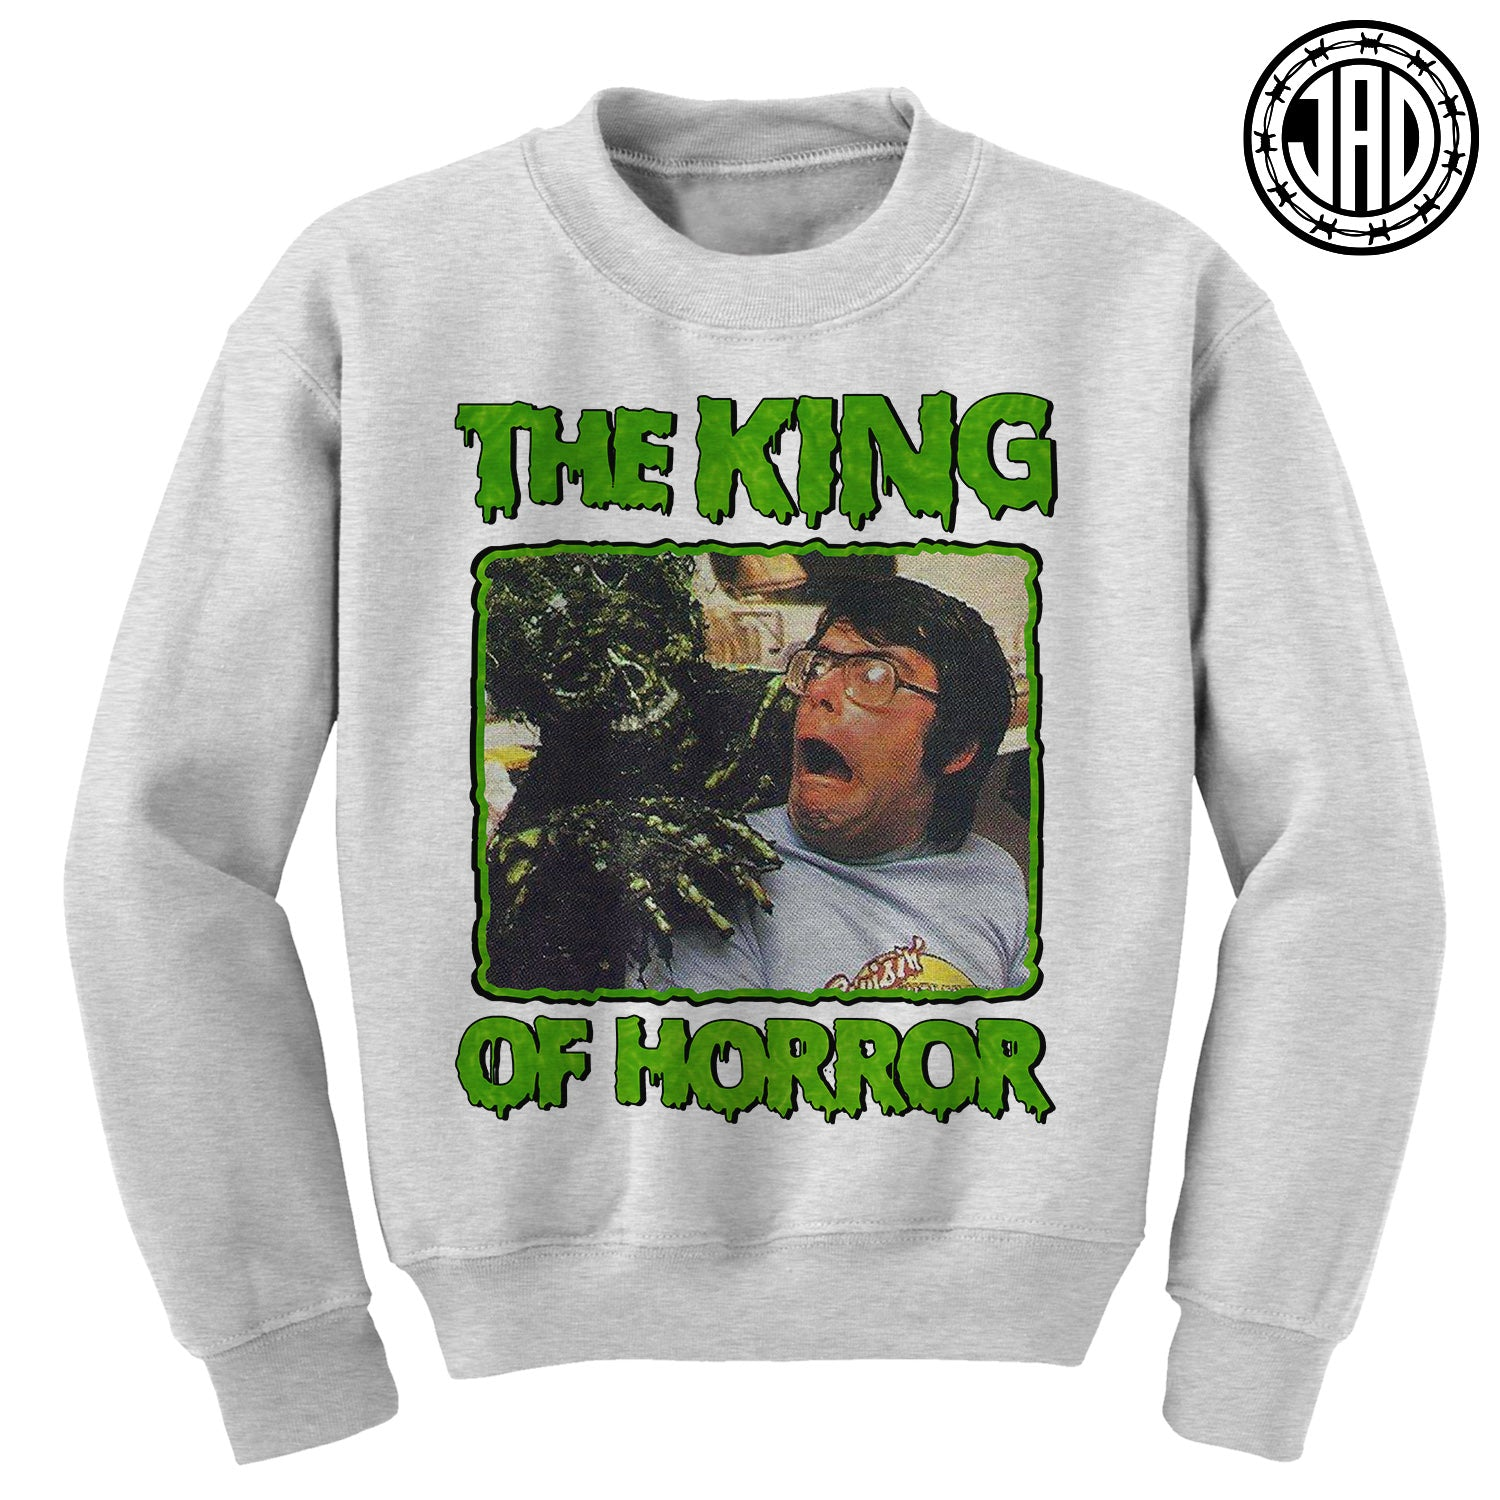 The King - Mens (Unisex) Crewneck Sweater